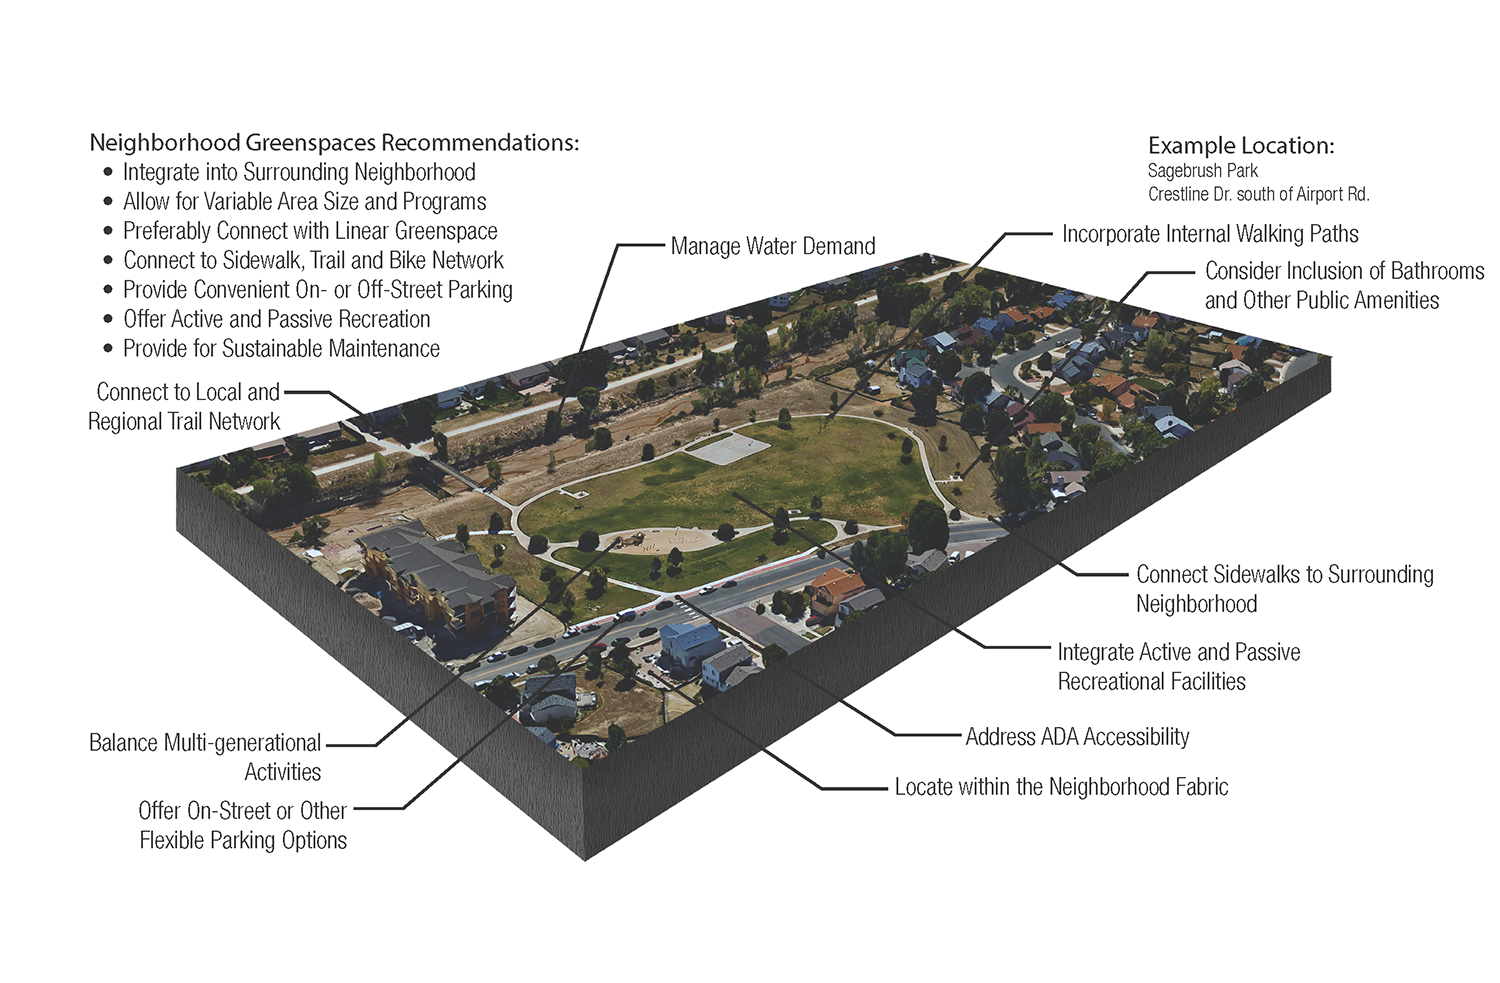 map showing neighborhood greenspace recommendations